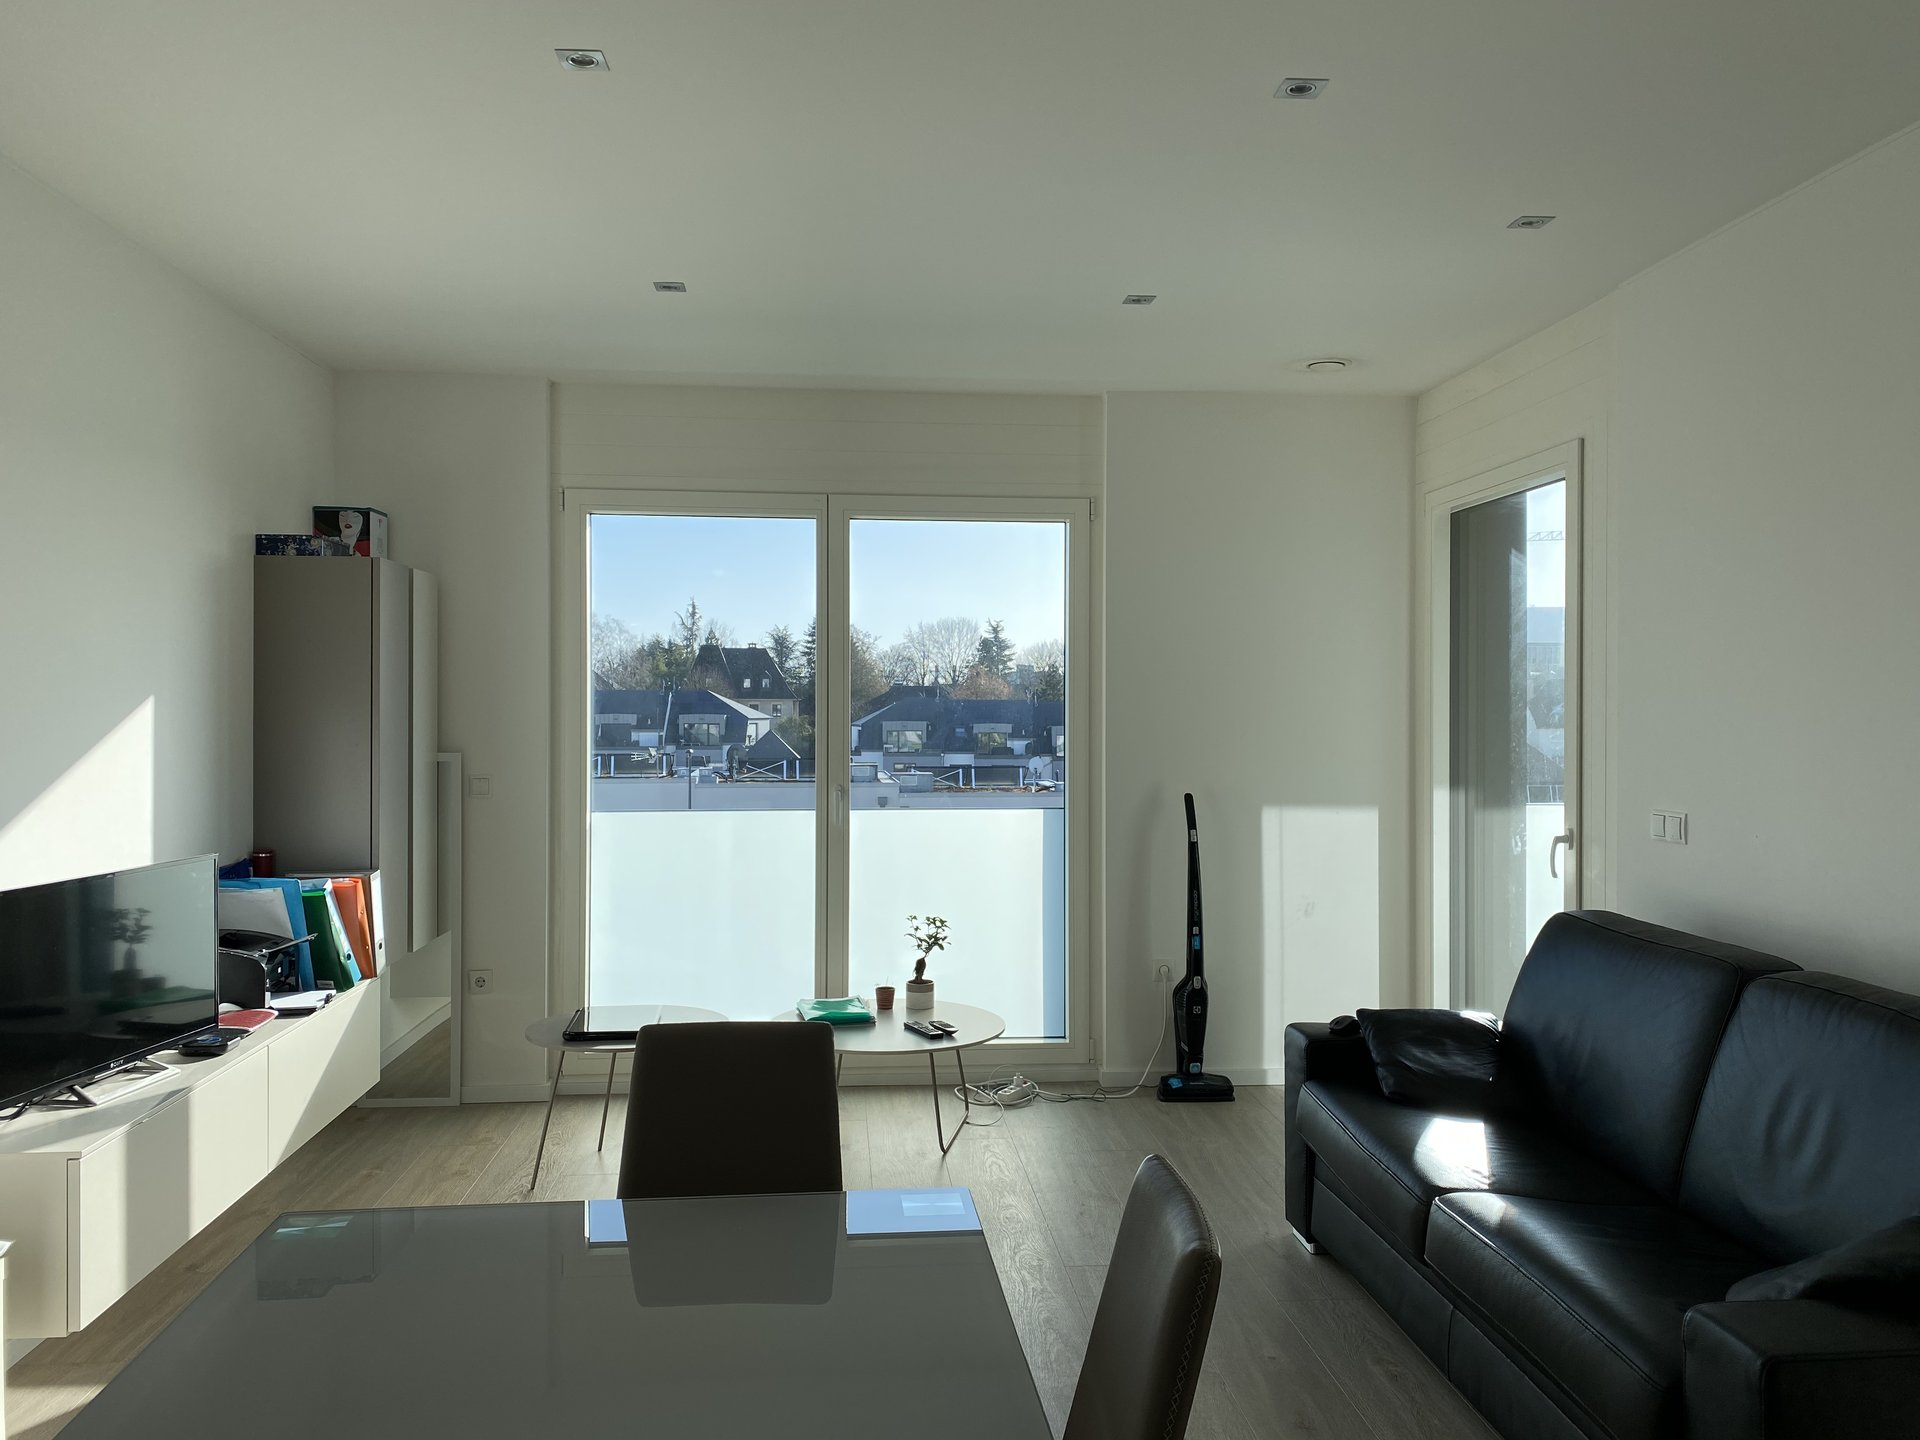 Location Appartement - Luxembourg Kirchberg - Luxembourg